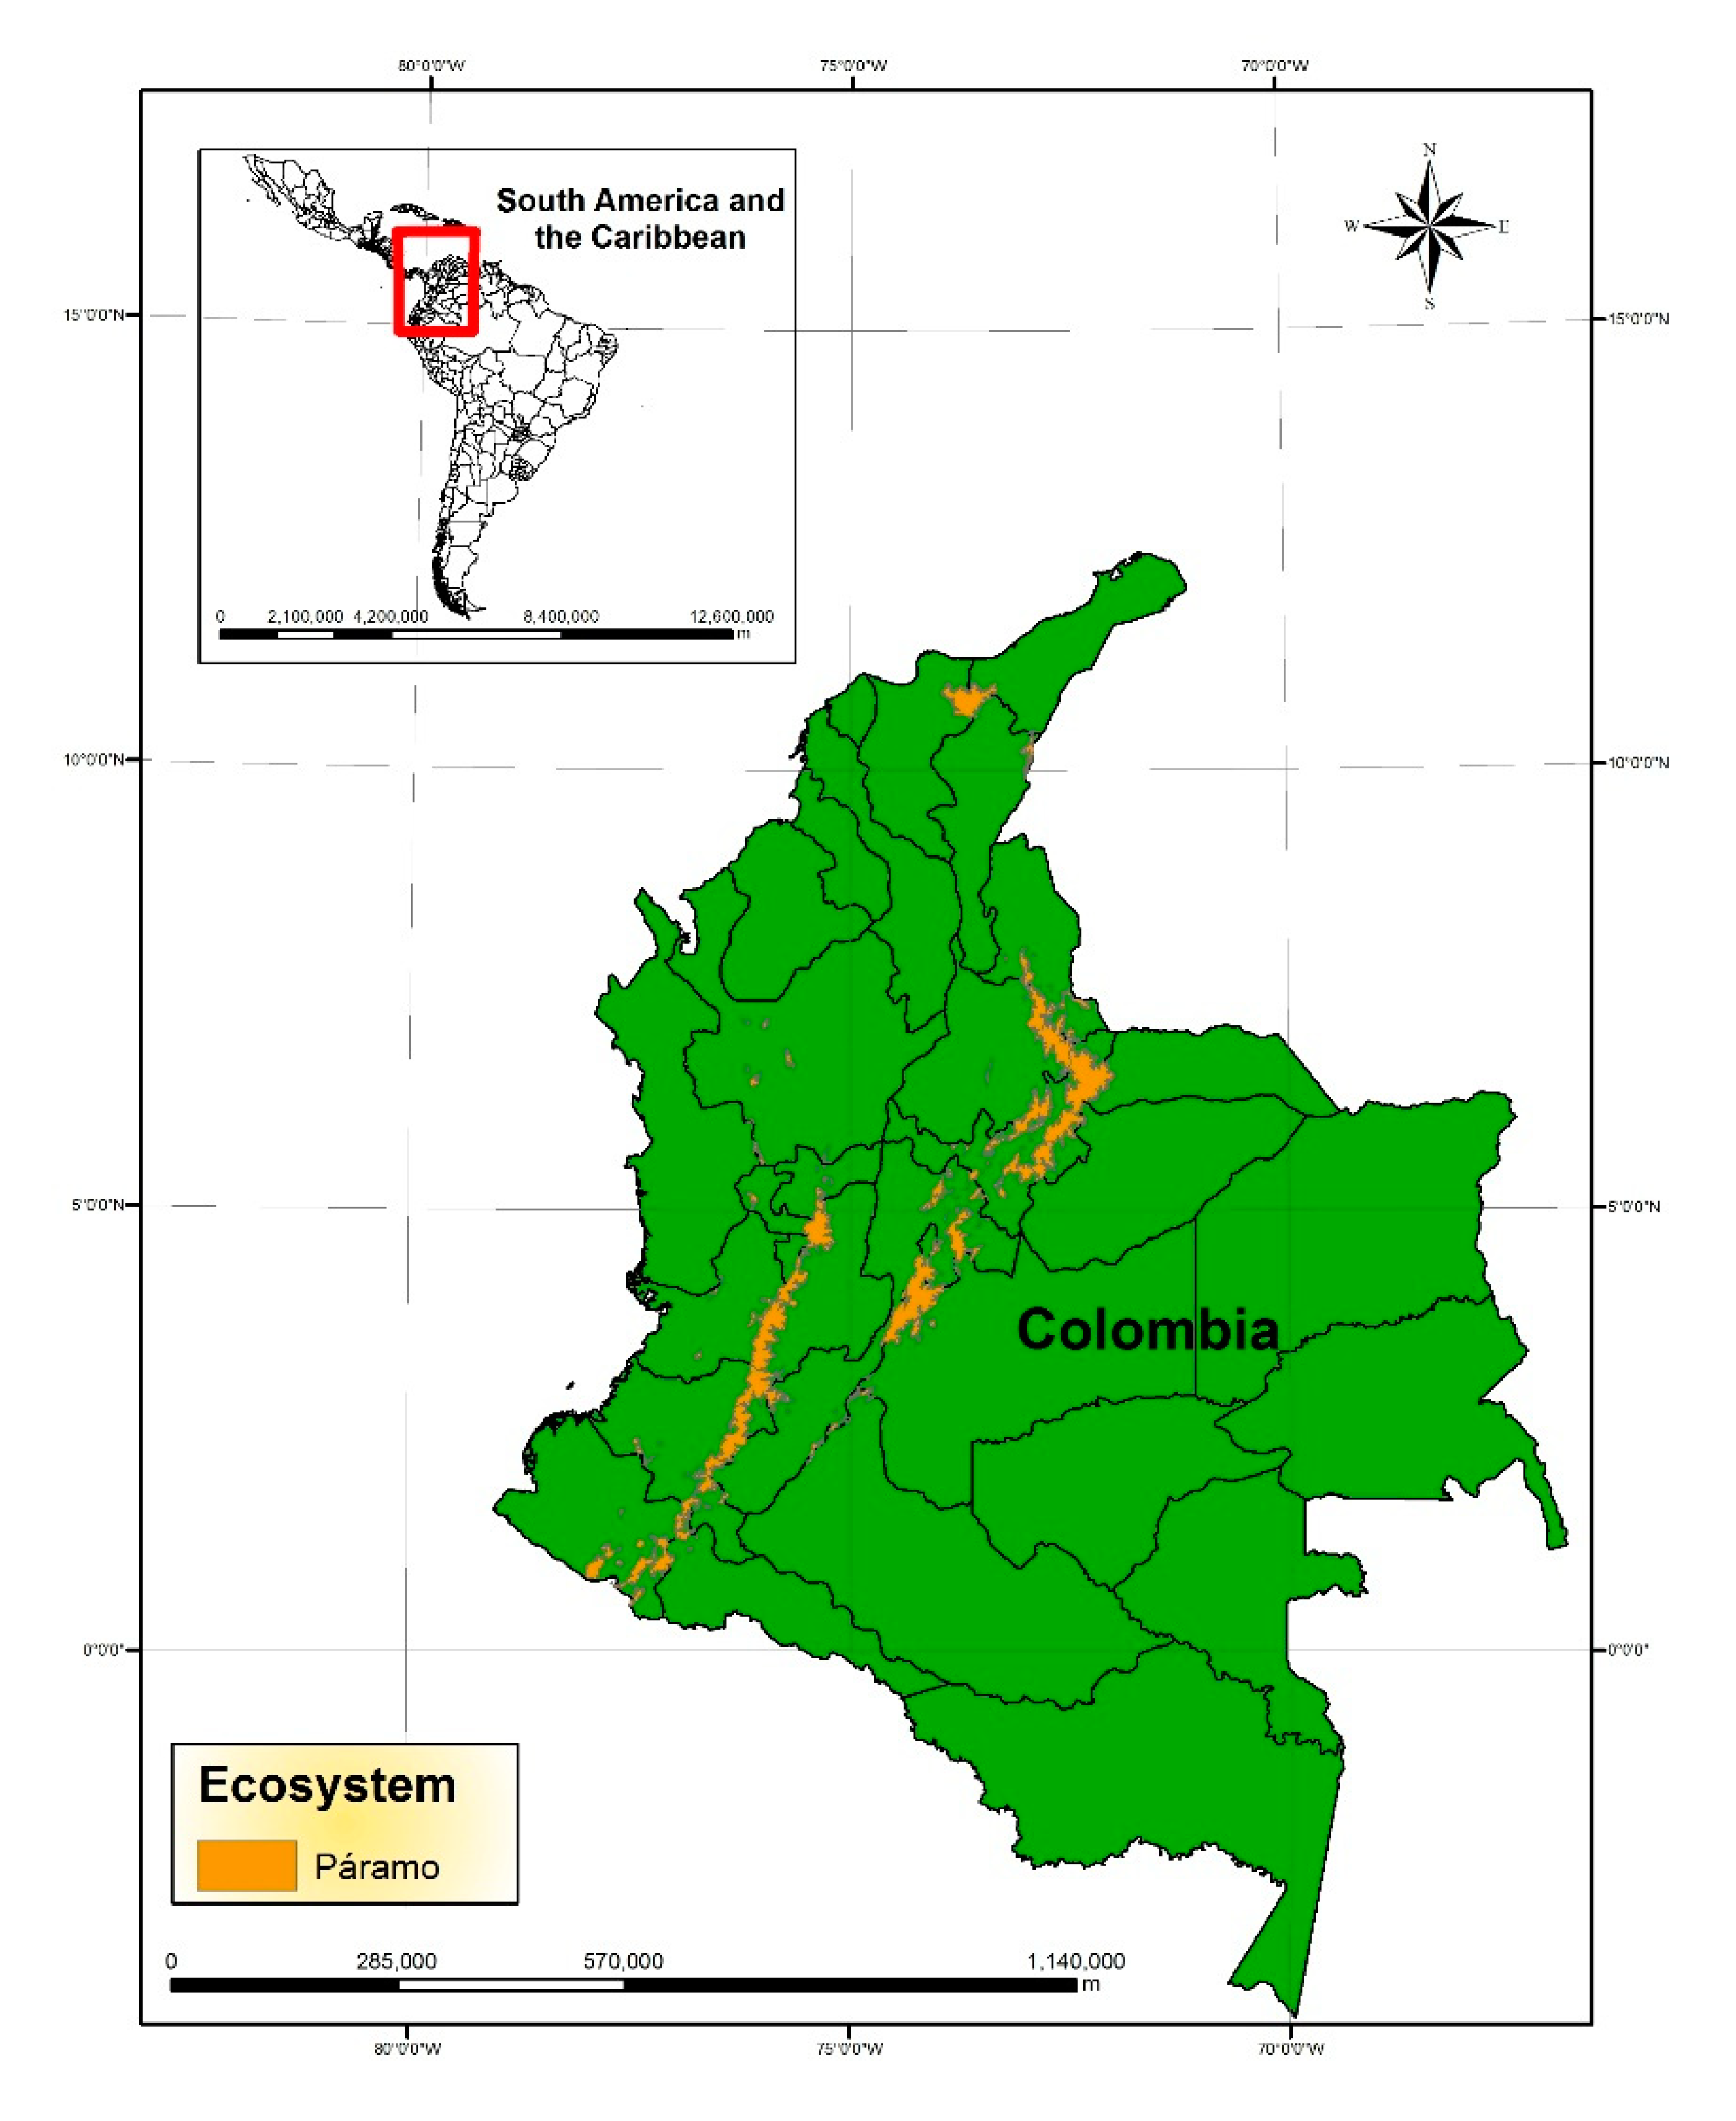 Systems Free Full Text Sustainable Feedbacks Of Colombian Paramos Involving Livestock Agricultural Activities And Sustainable Development Goals Of The Agenda 2030 Html